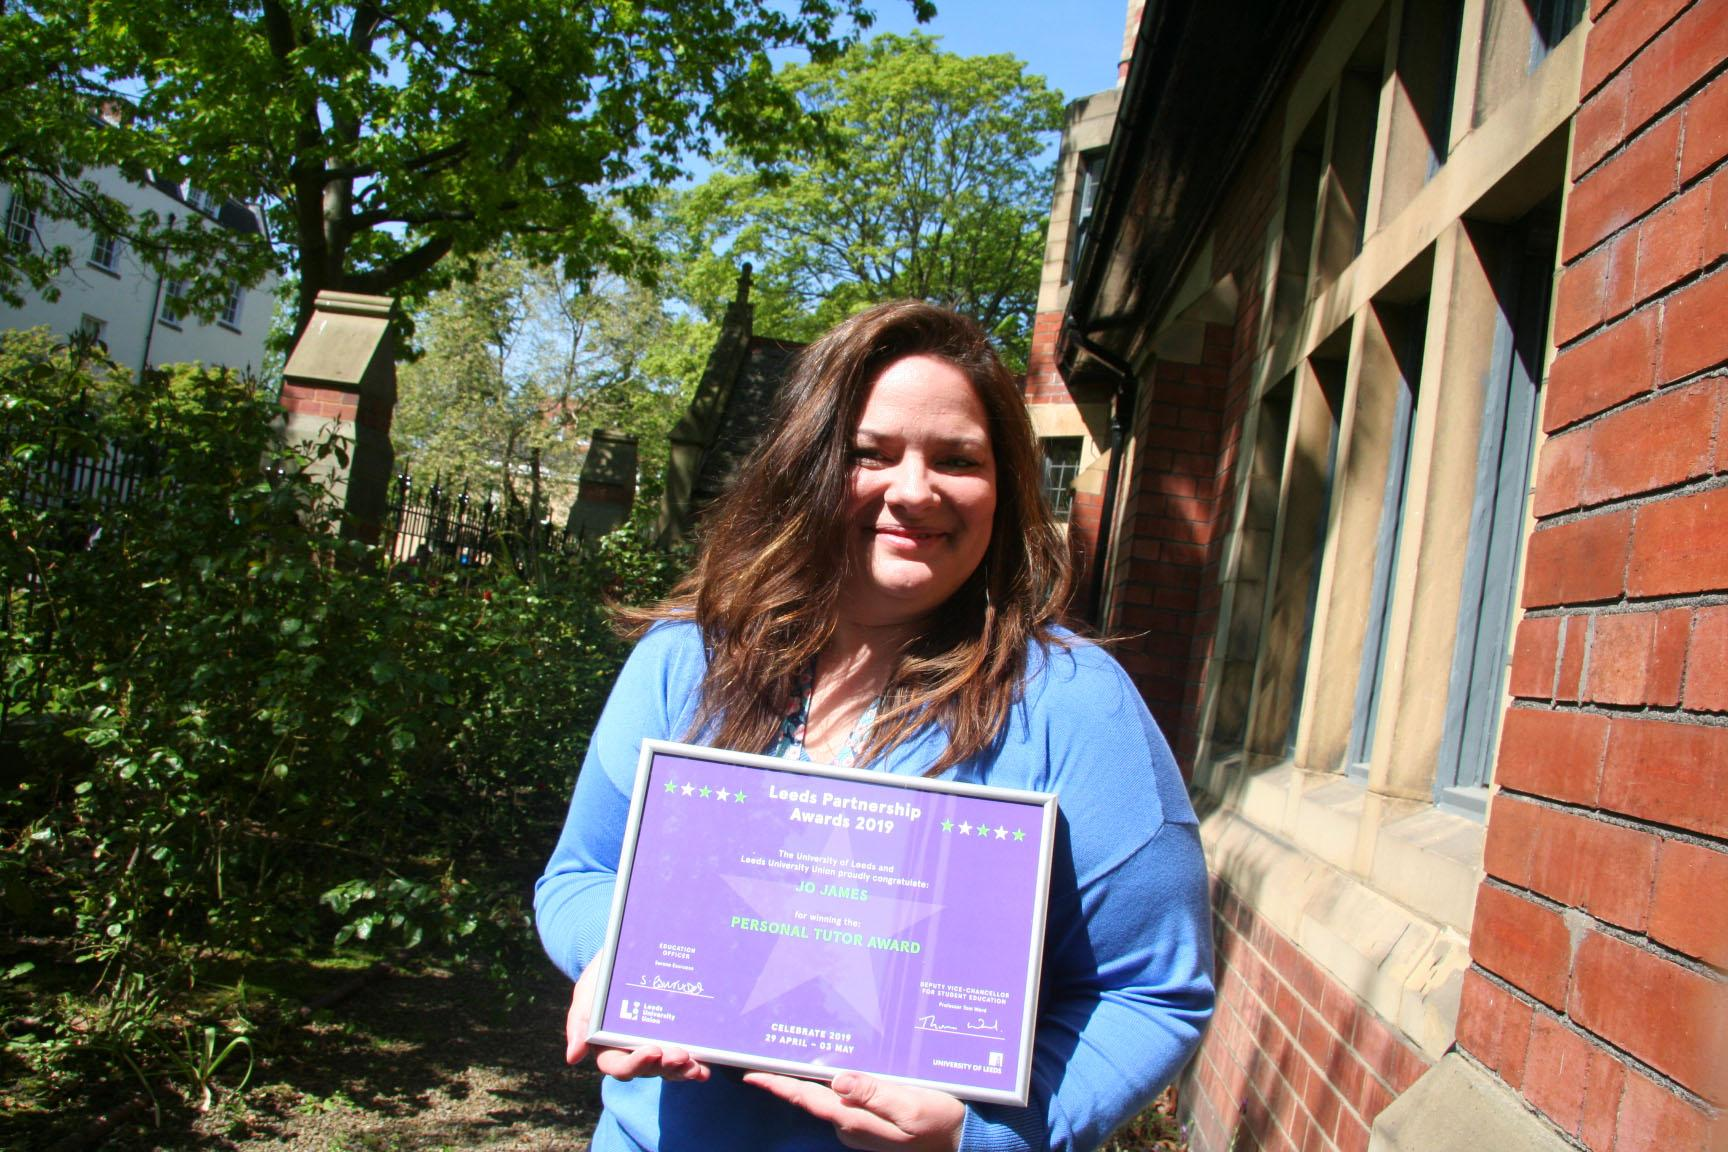 Jo James wins 'Personal Tutor' of the year at  Leeds University 2019 Partnership Awards